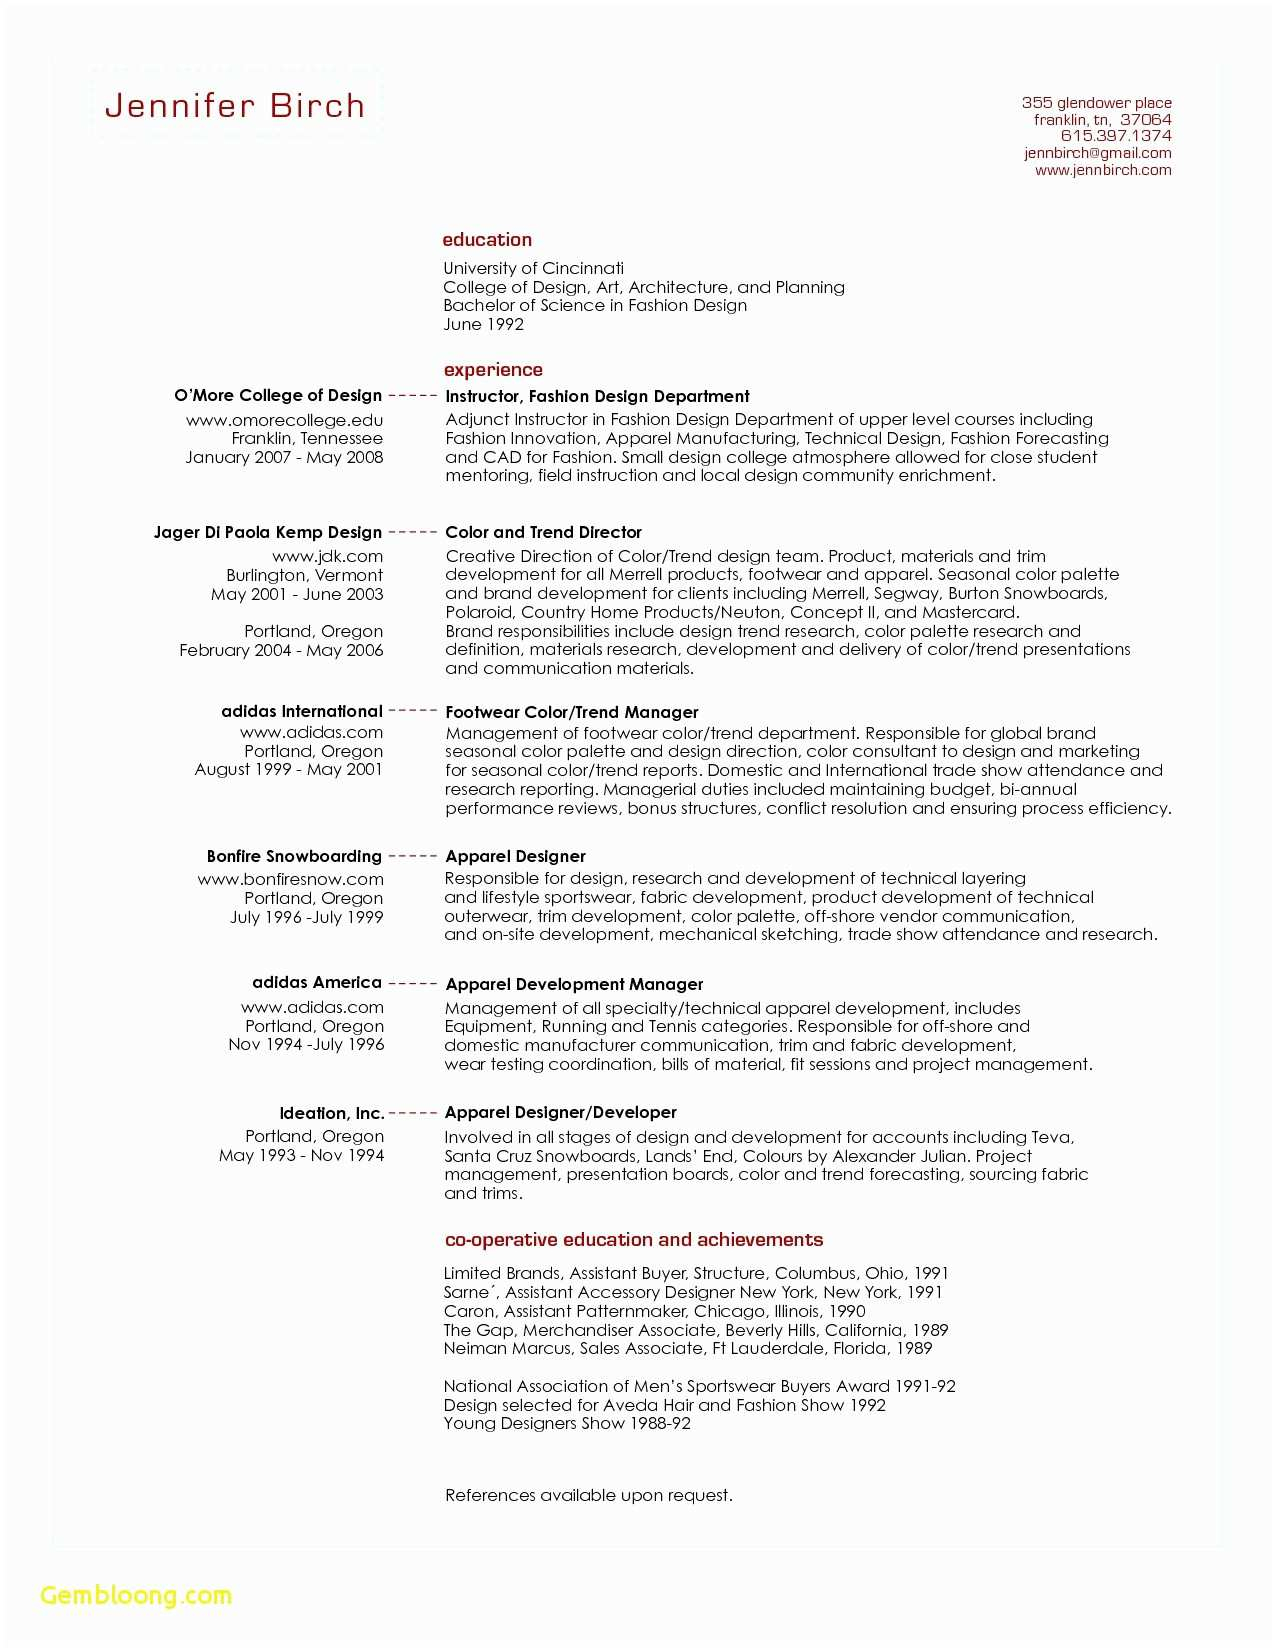 Words for Resumes - √ Sample From Word Resume Template source Netforcepress 0d E3159fe